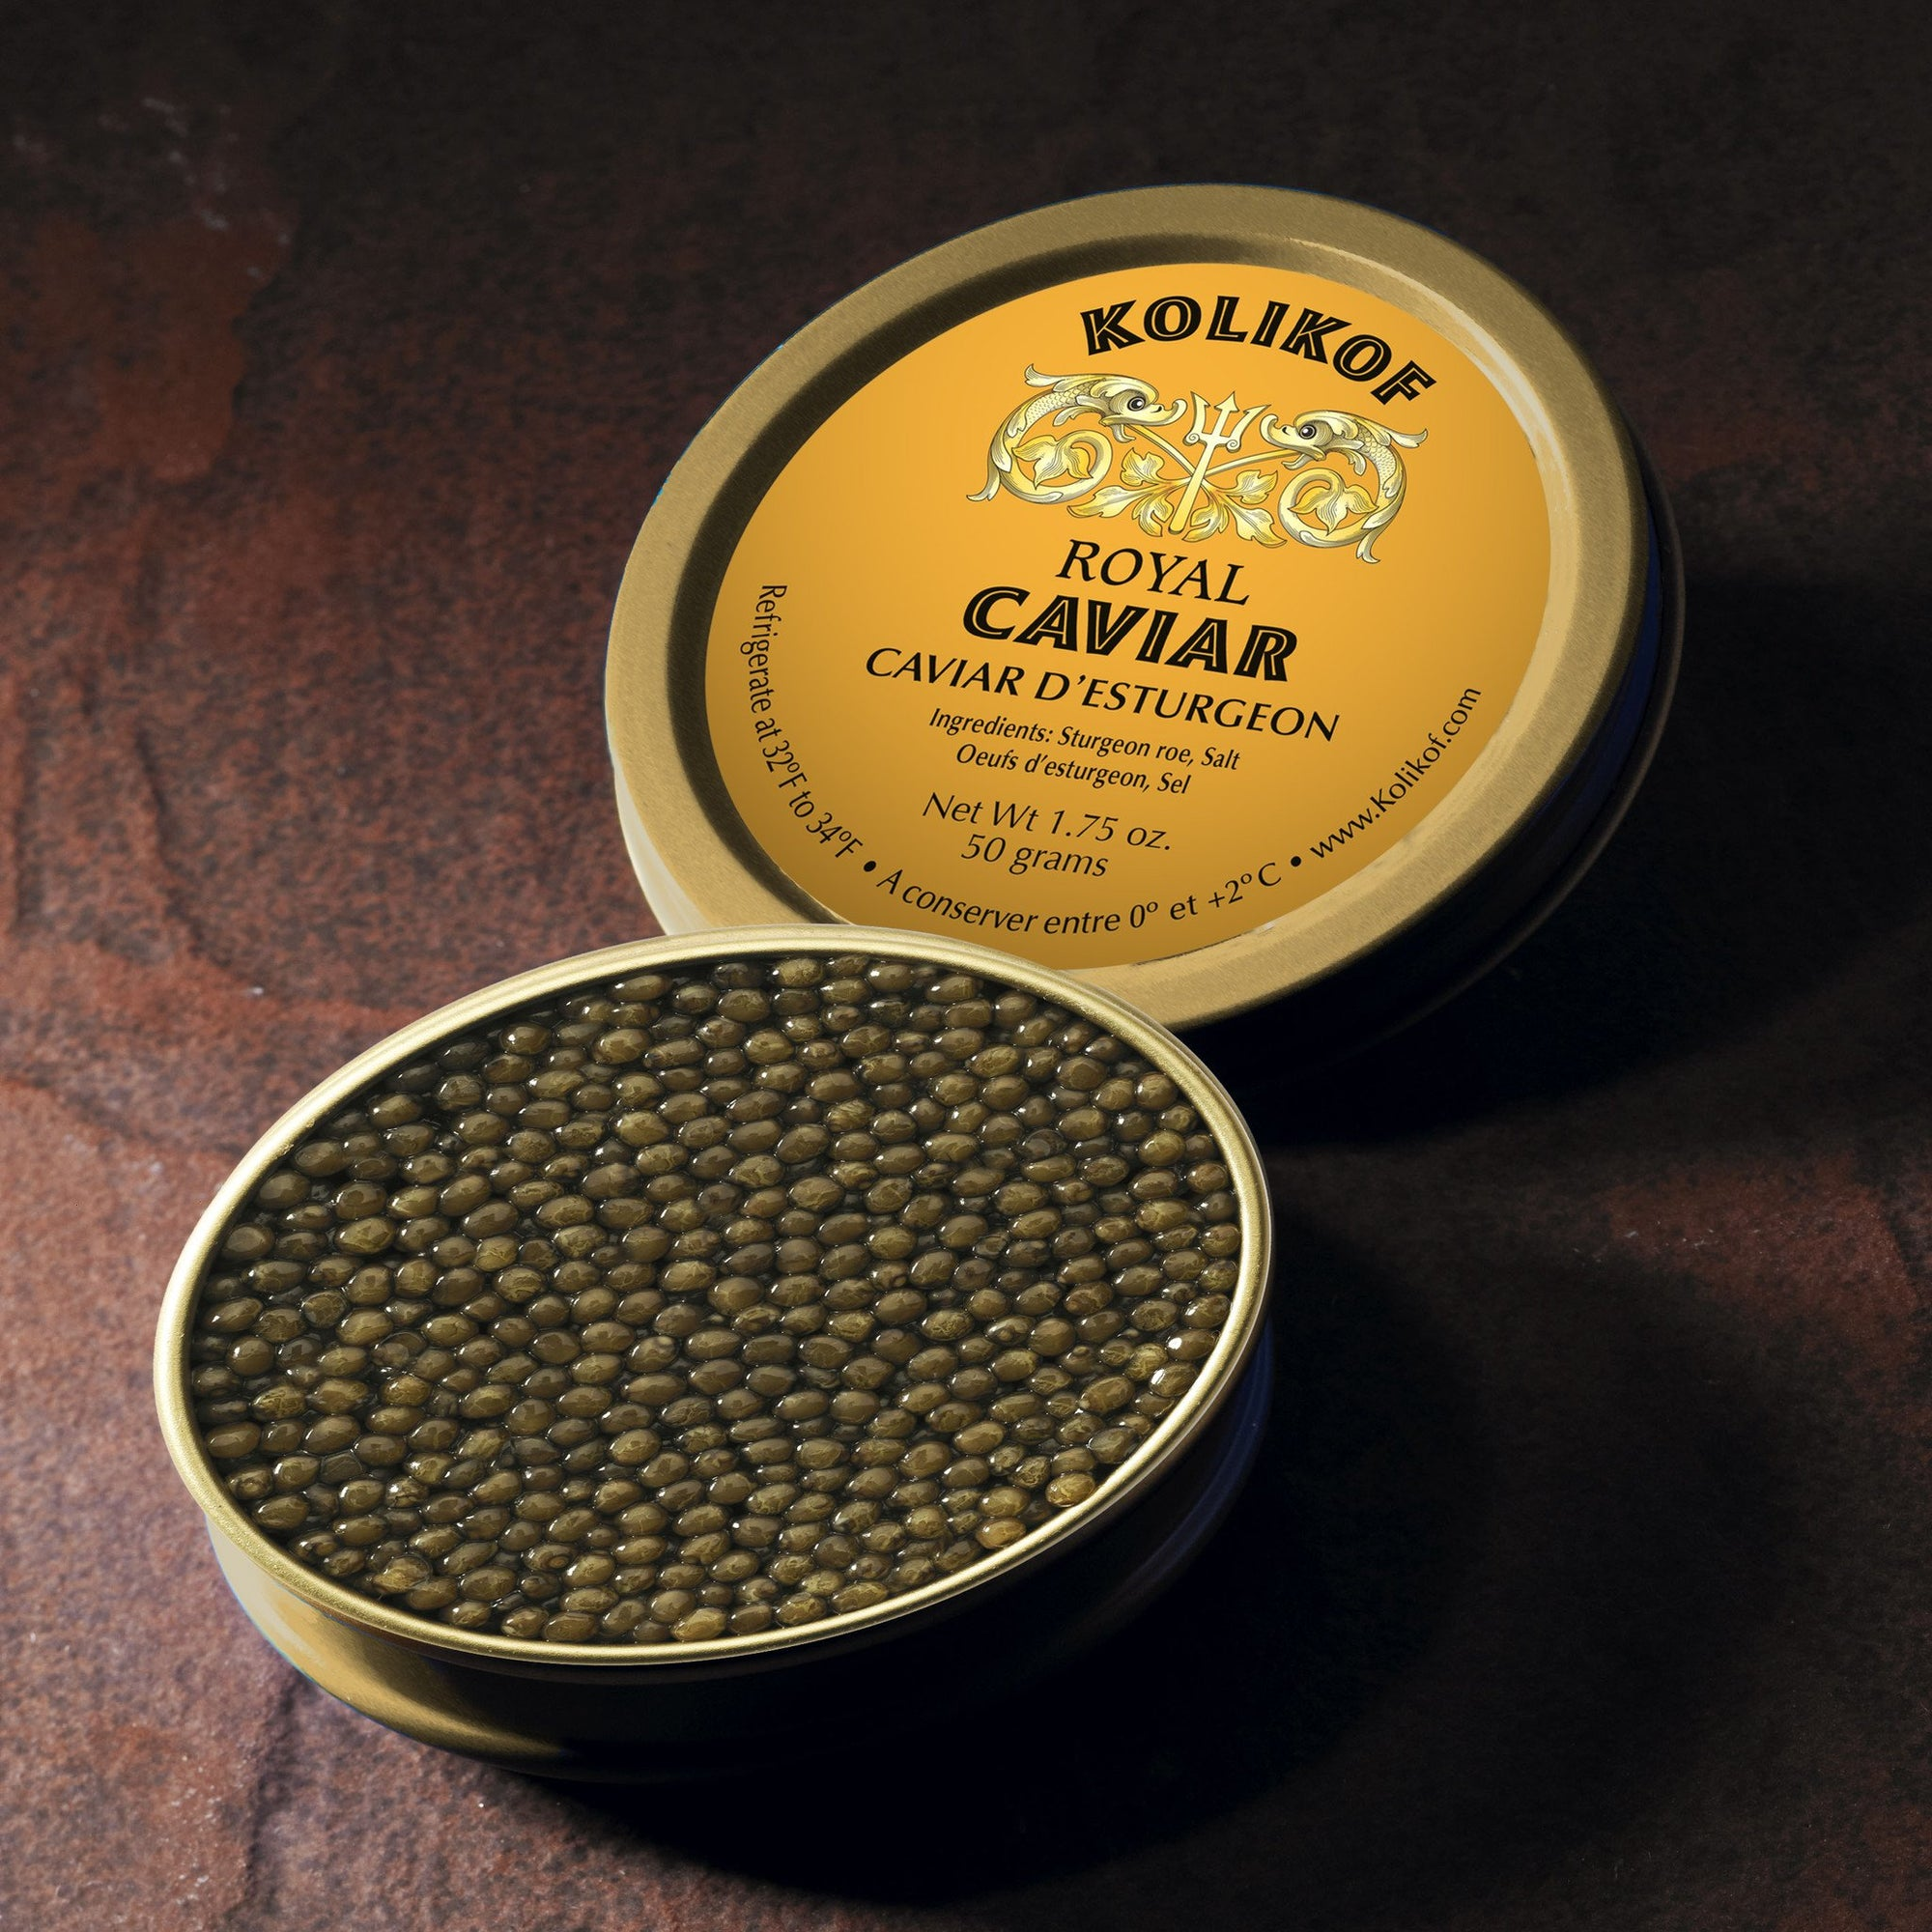 Best Royal Caviar. Kolikof Royal is the best caviar online.